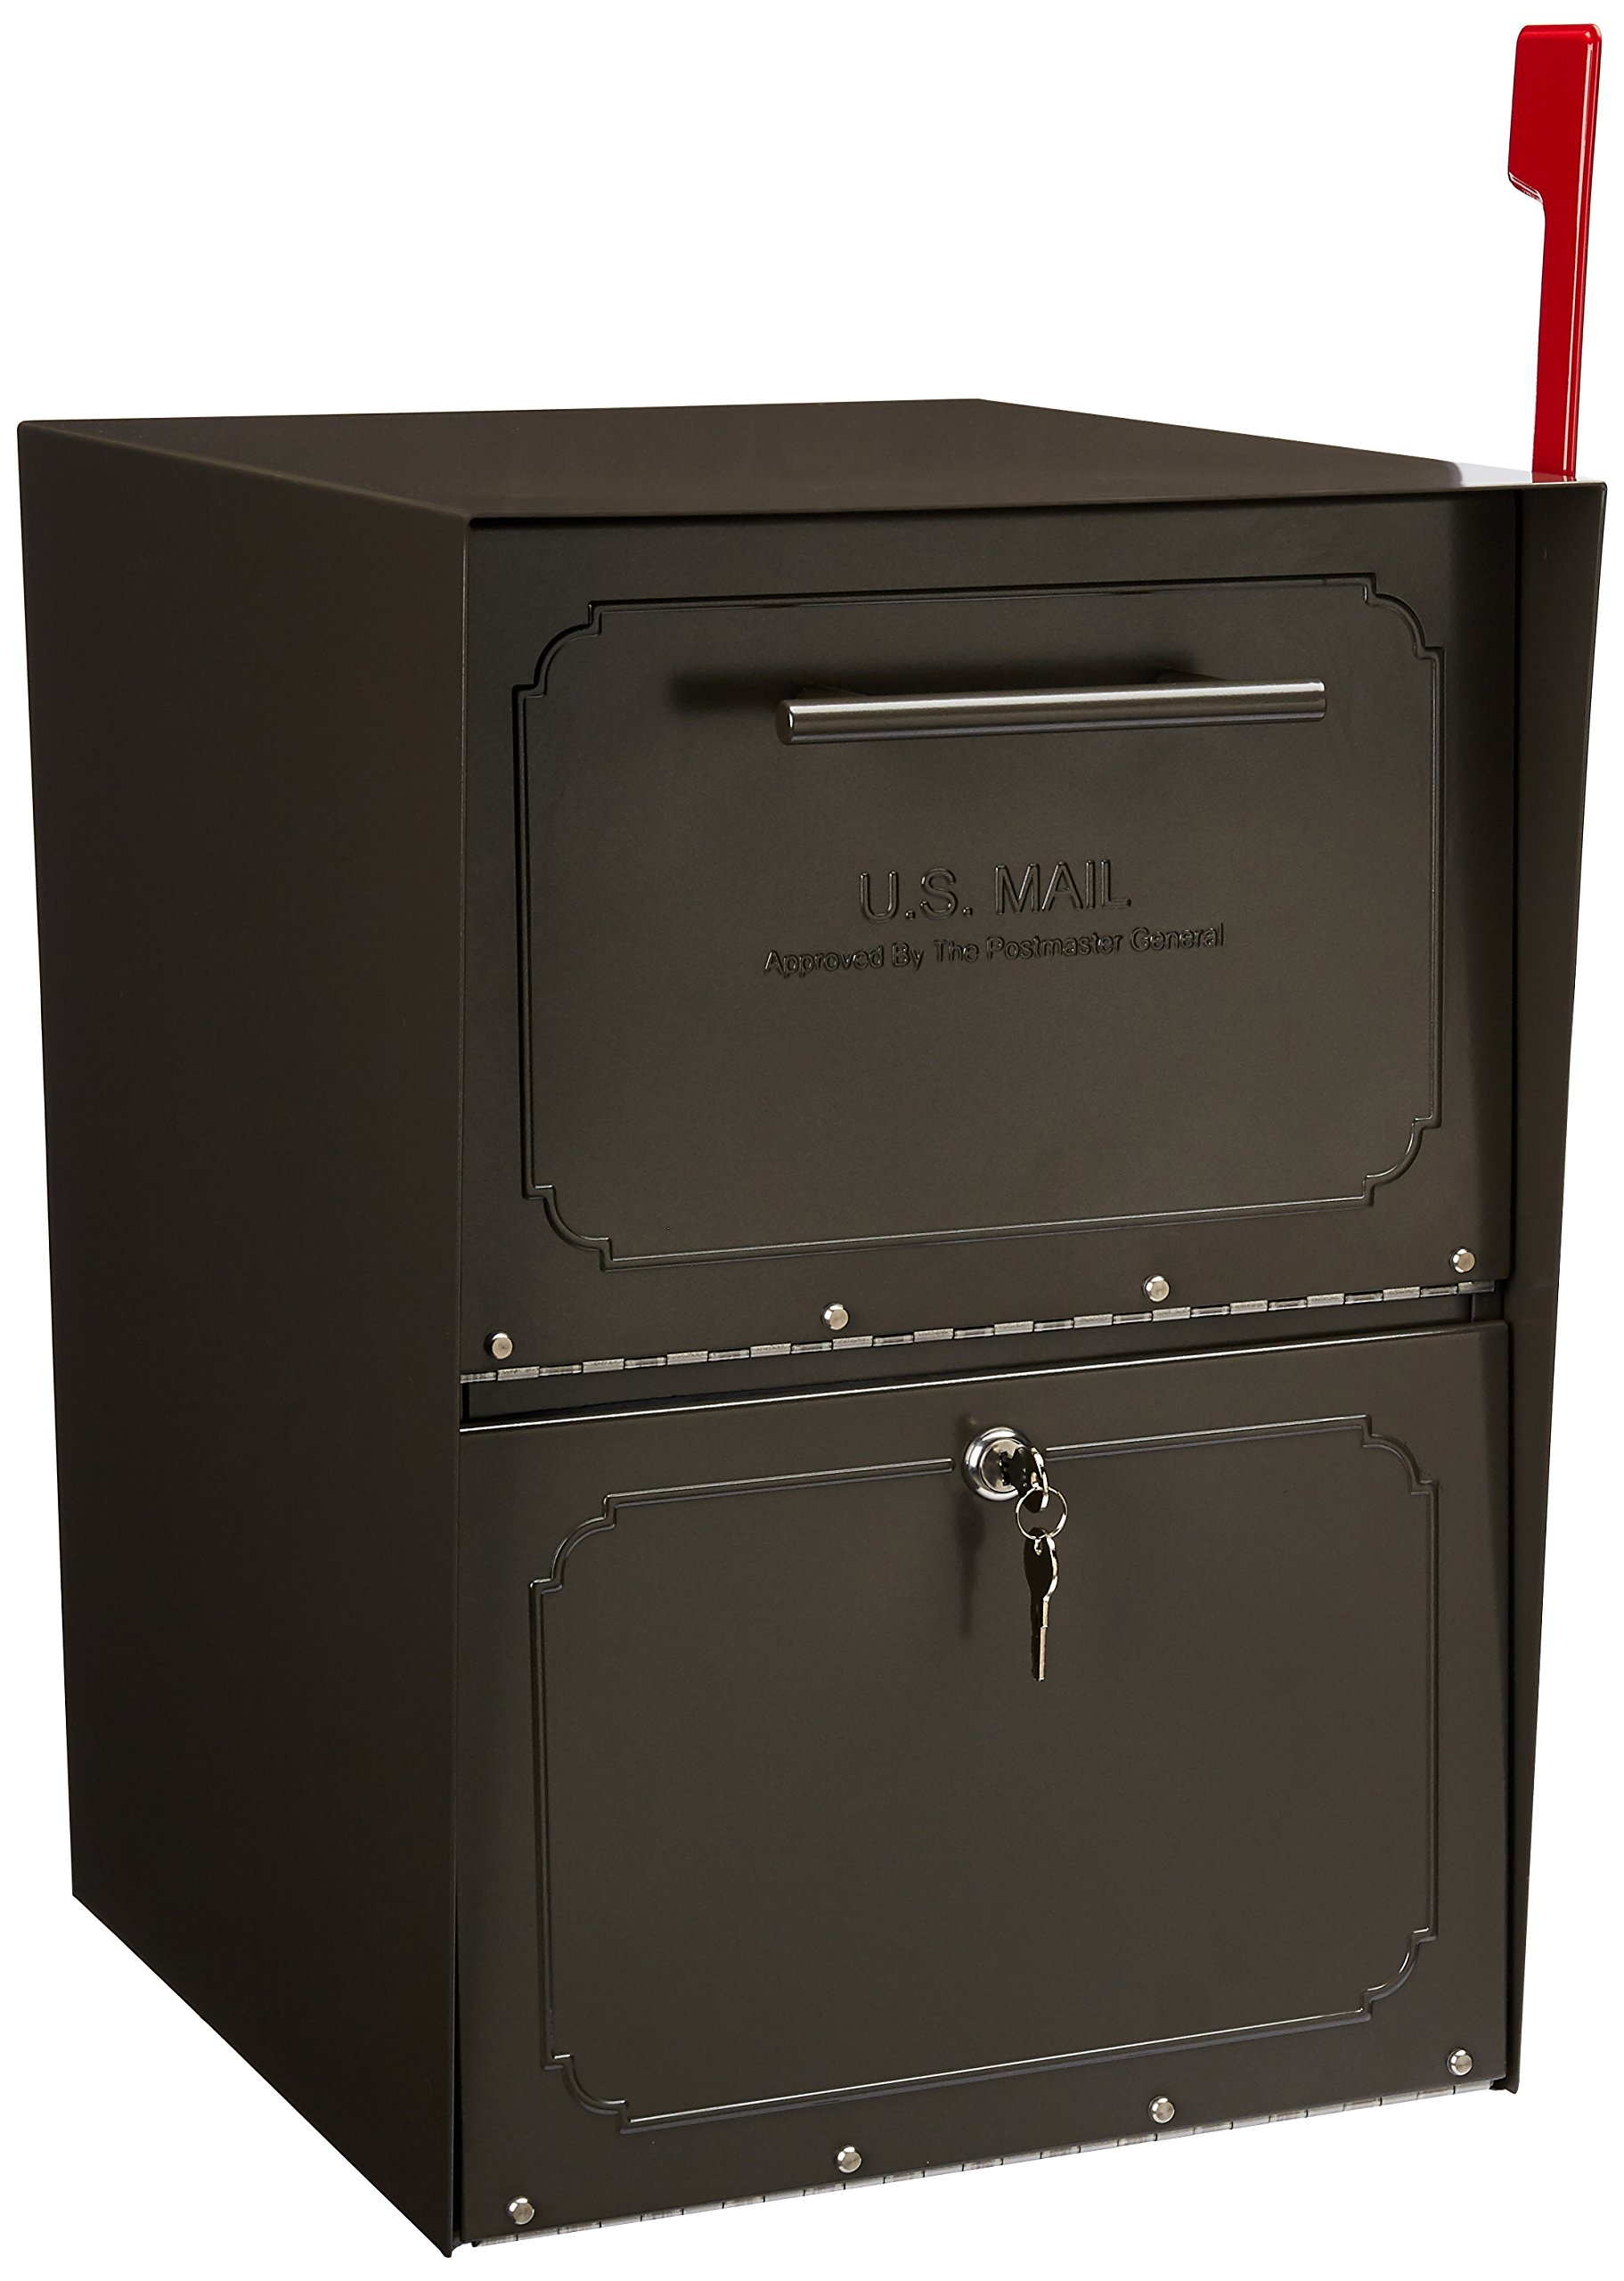 Architectural Mailboxes Oasis Mailbox, Graphite Bronze by ARCHITECTURAL MAILBOXES